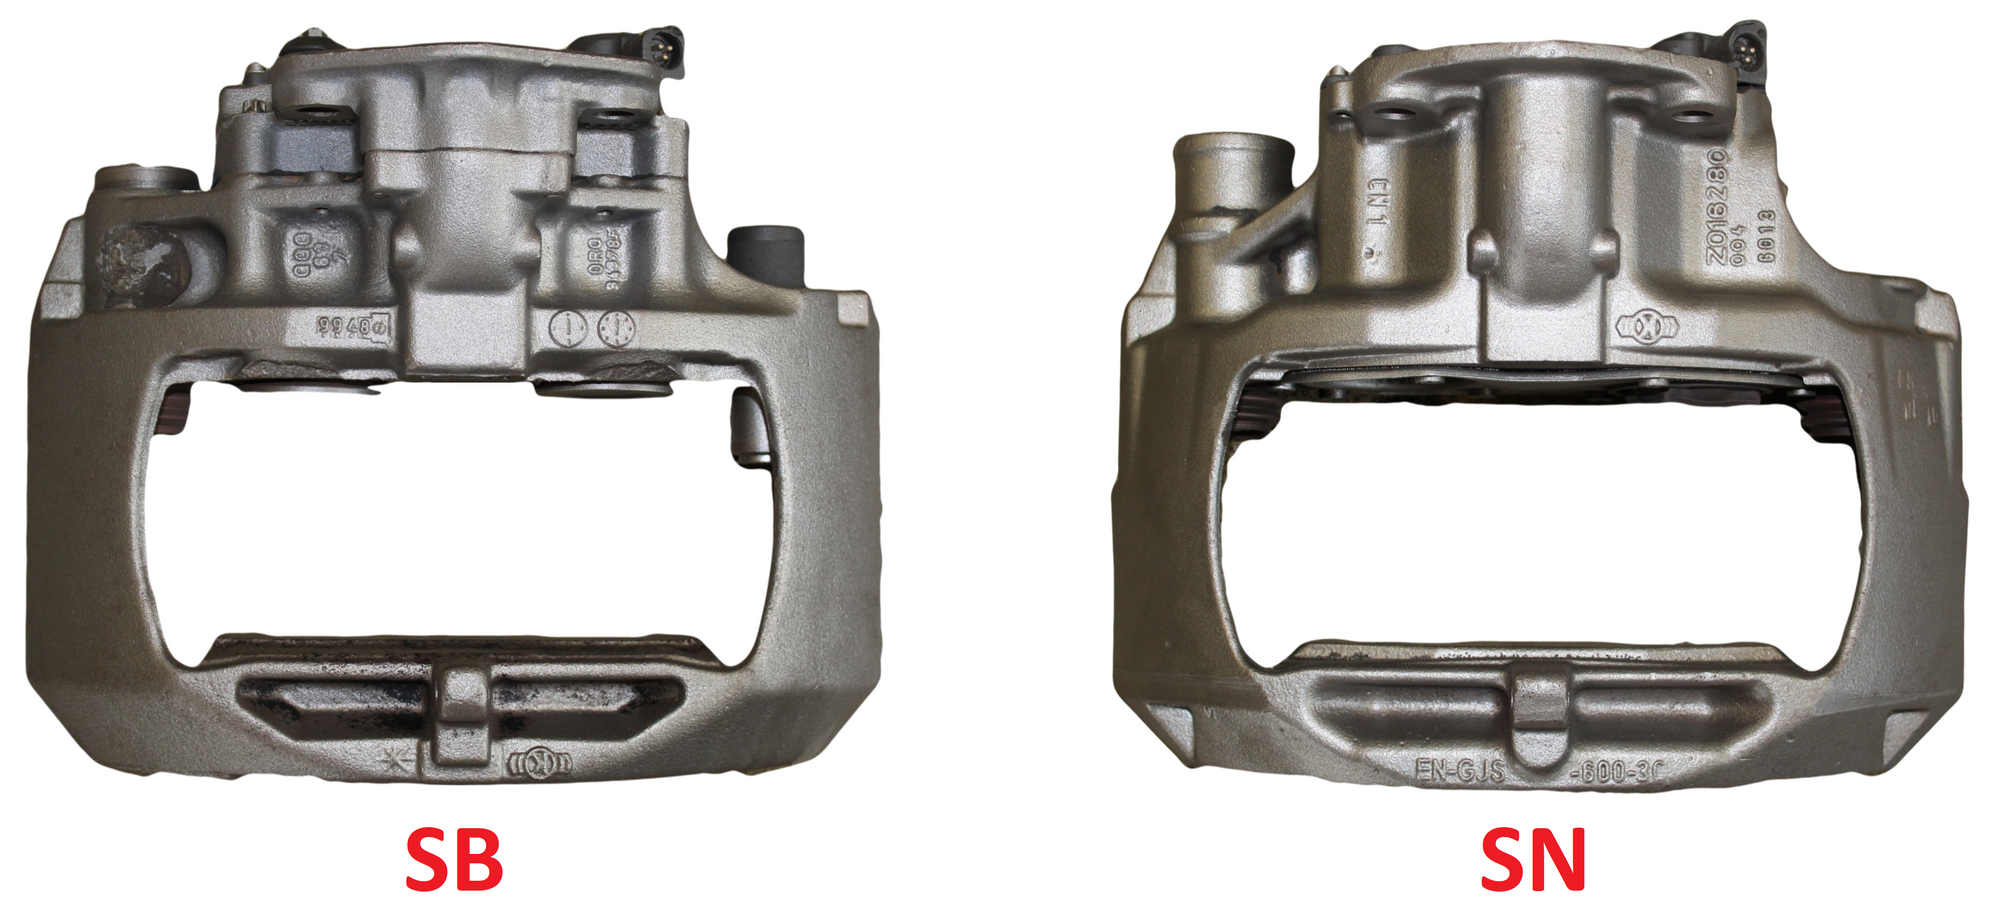 Knorr-Bremse SB7 and SN7 brake calipers - what is the difference?